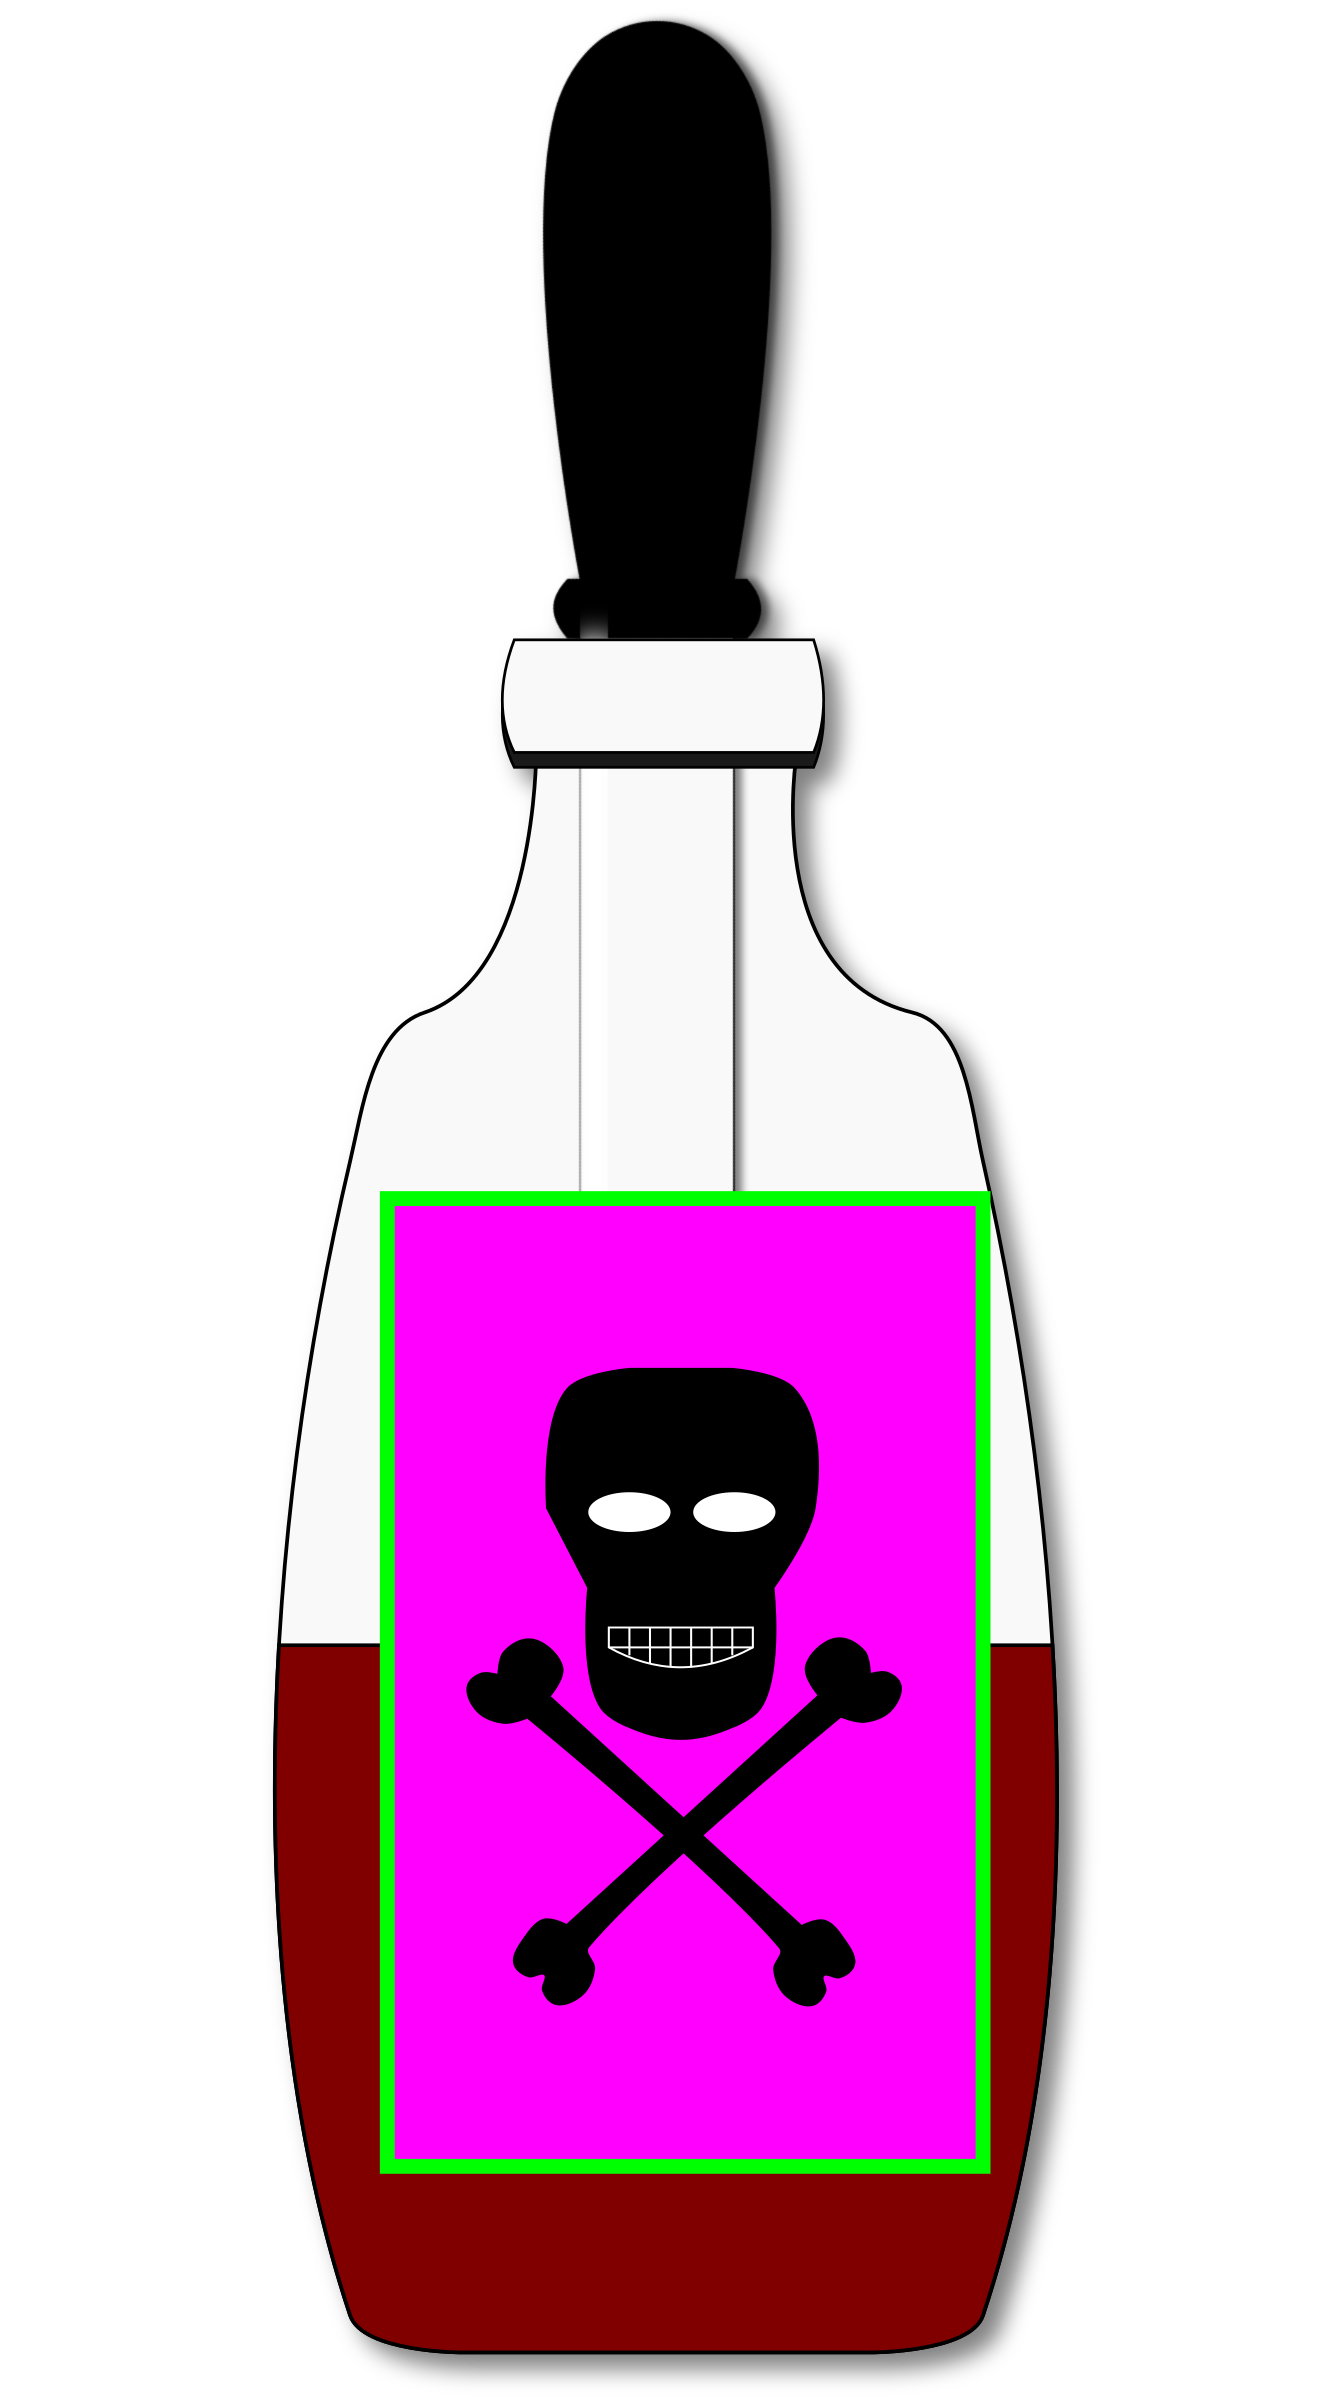 banner transparent library Poison clipart. Vial closed big image.